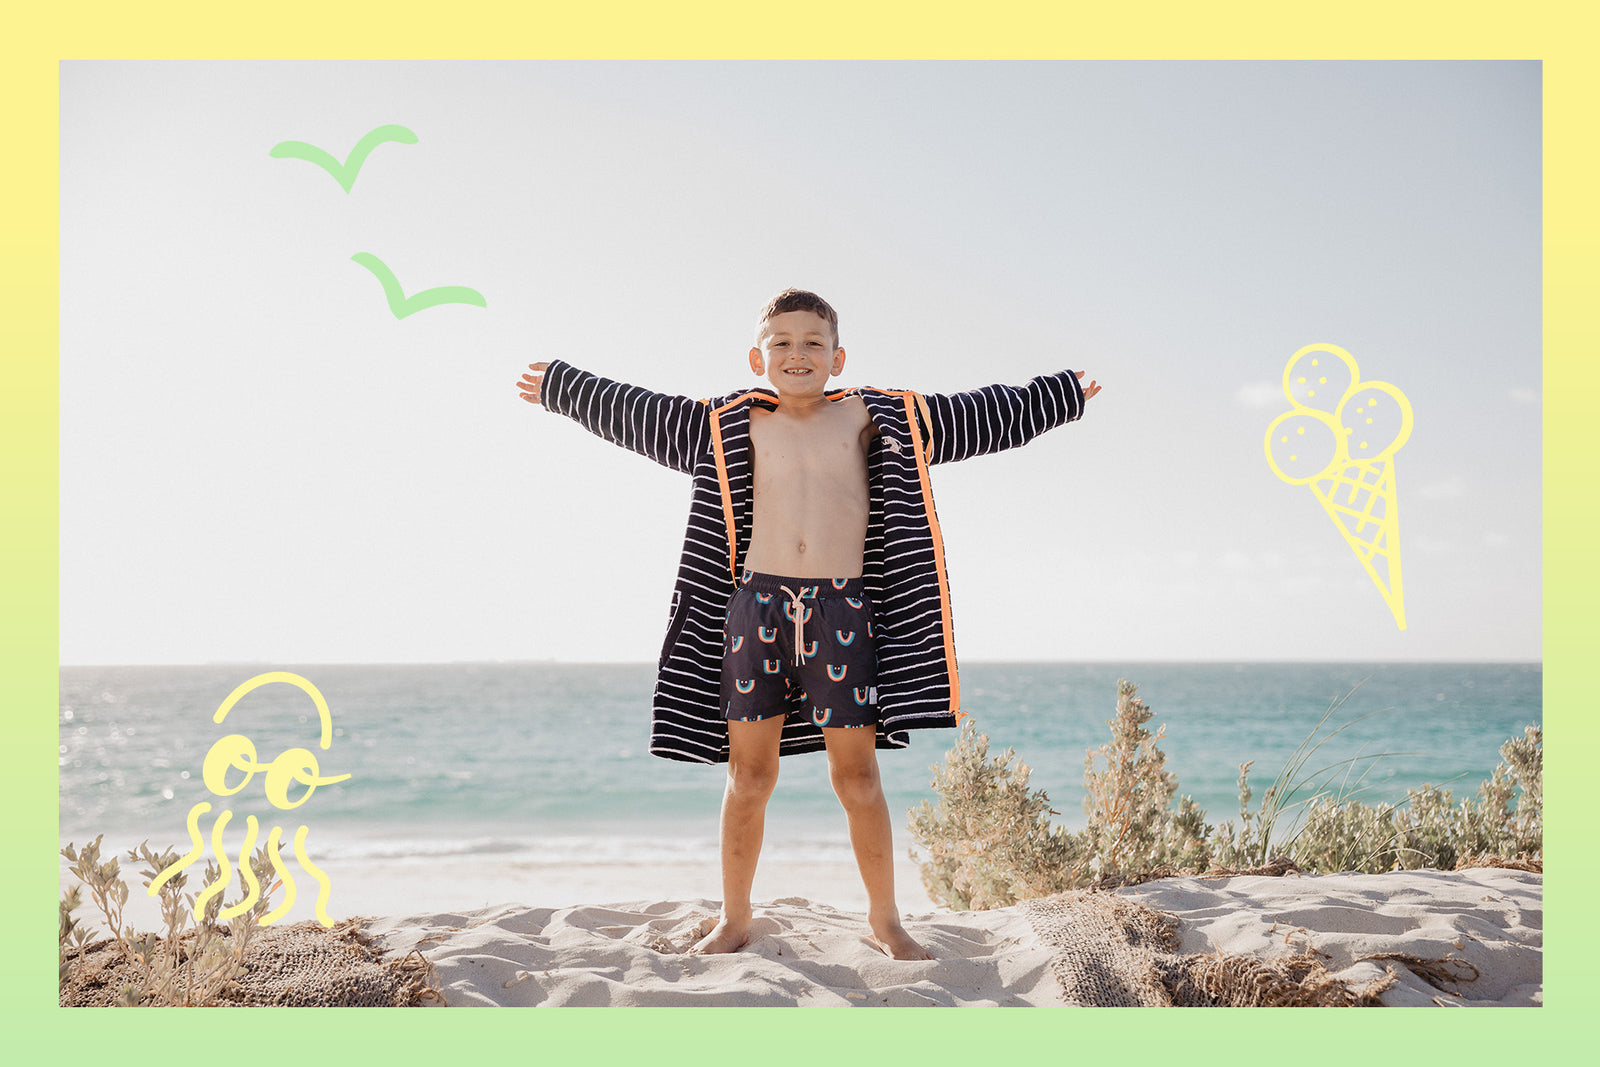 Kids' Hooded Towels (Swim Robes) UPF 50+